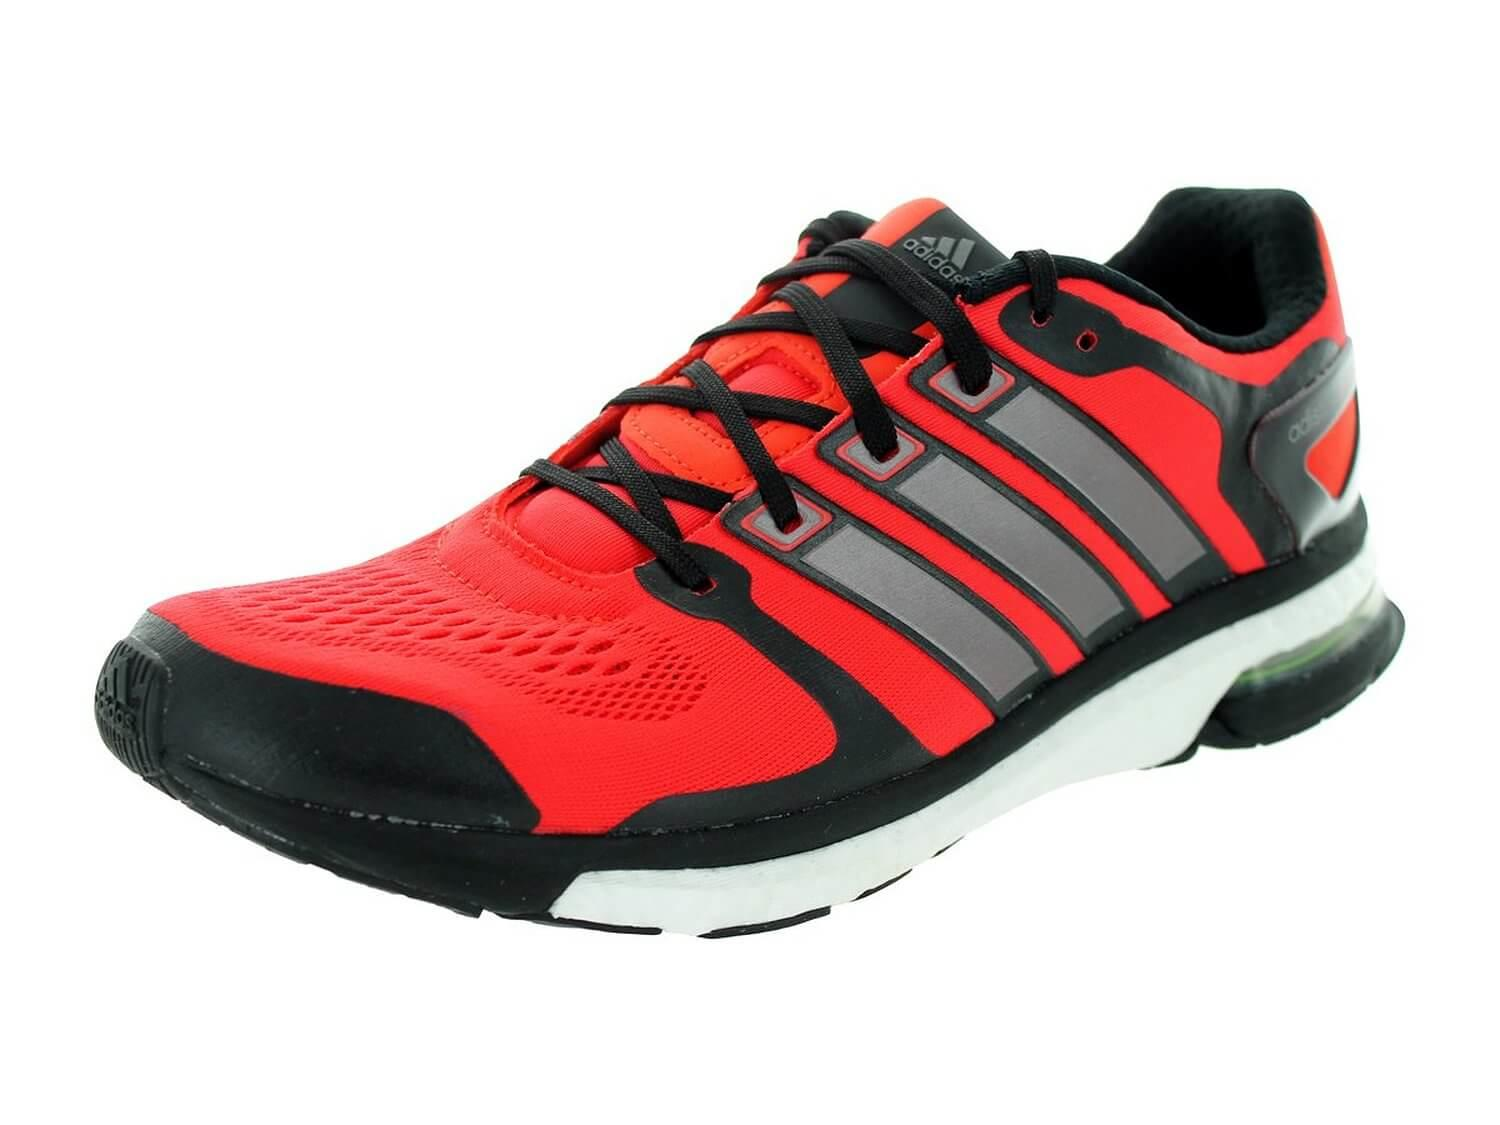 Adistar Boost Shoes Review